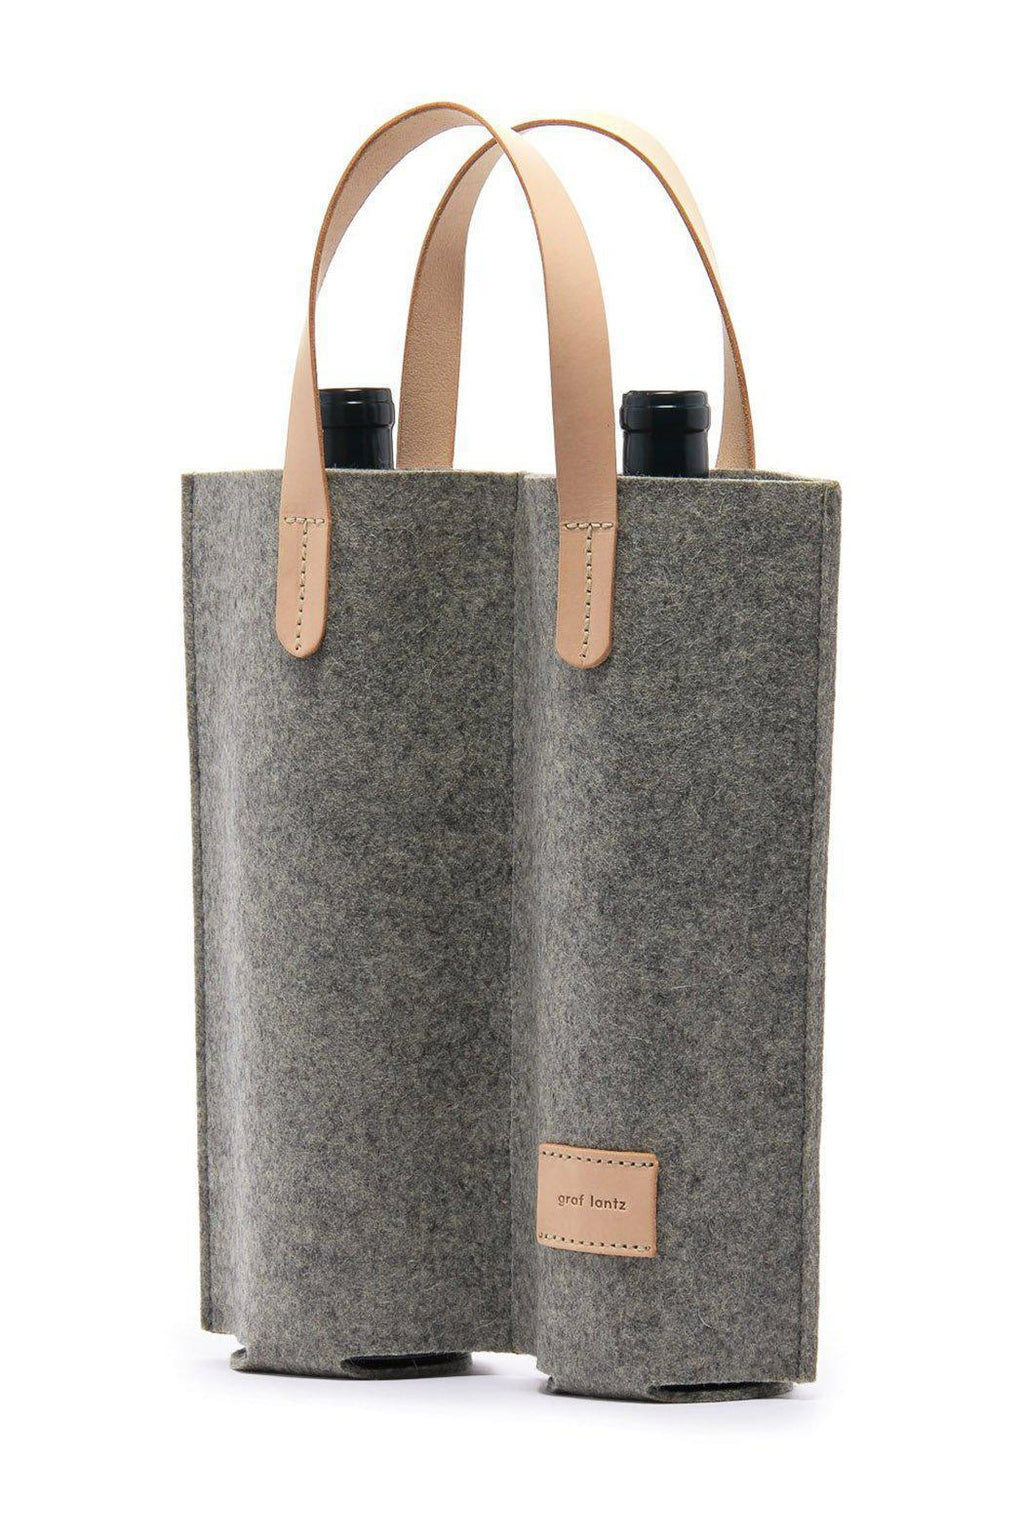 Graf Lantz Cozy Carrier Duo Felt Wine Bag